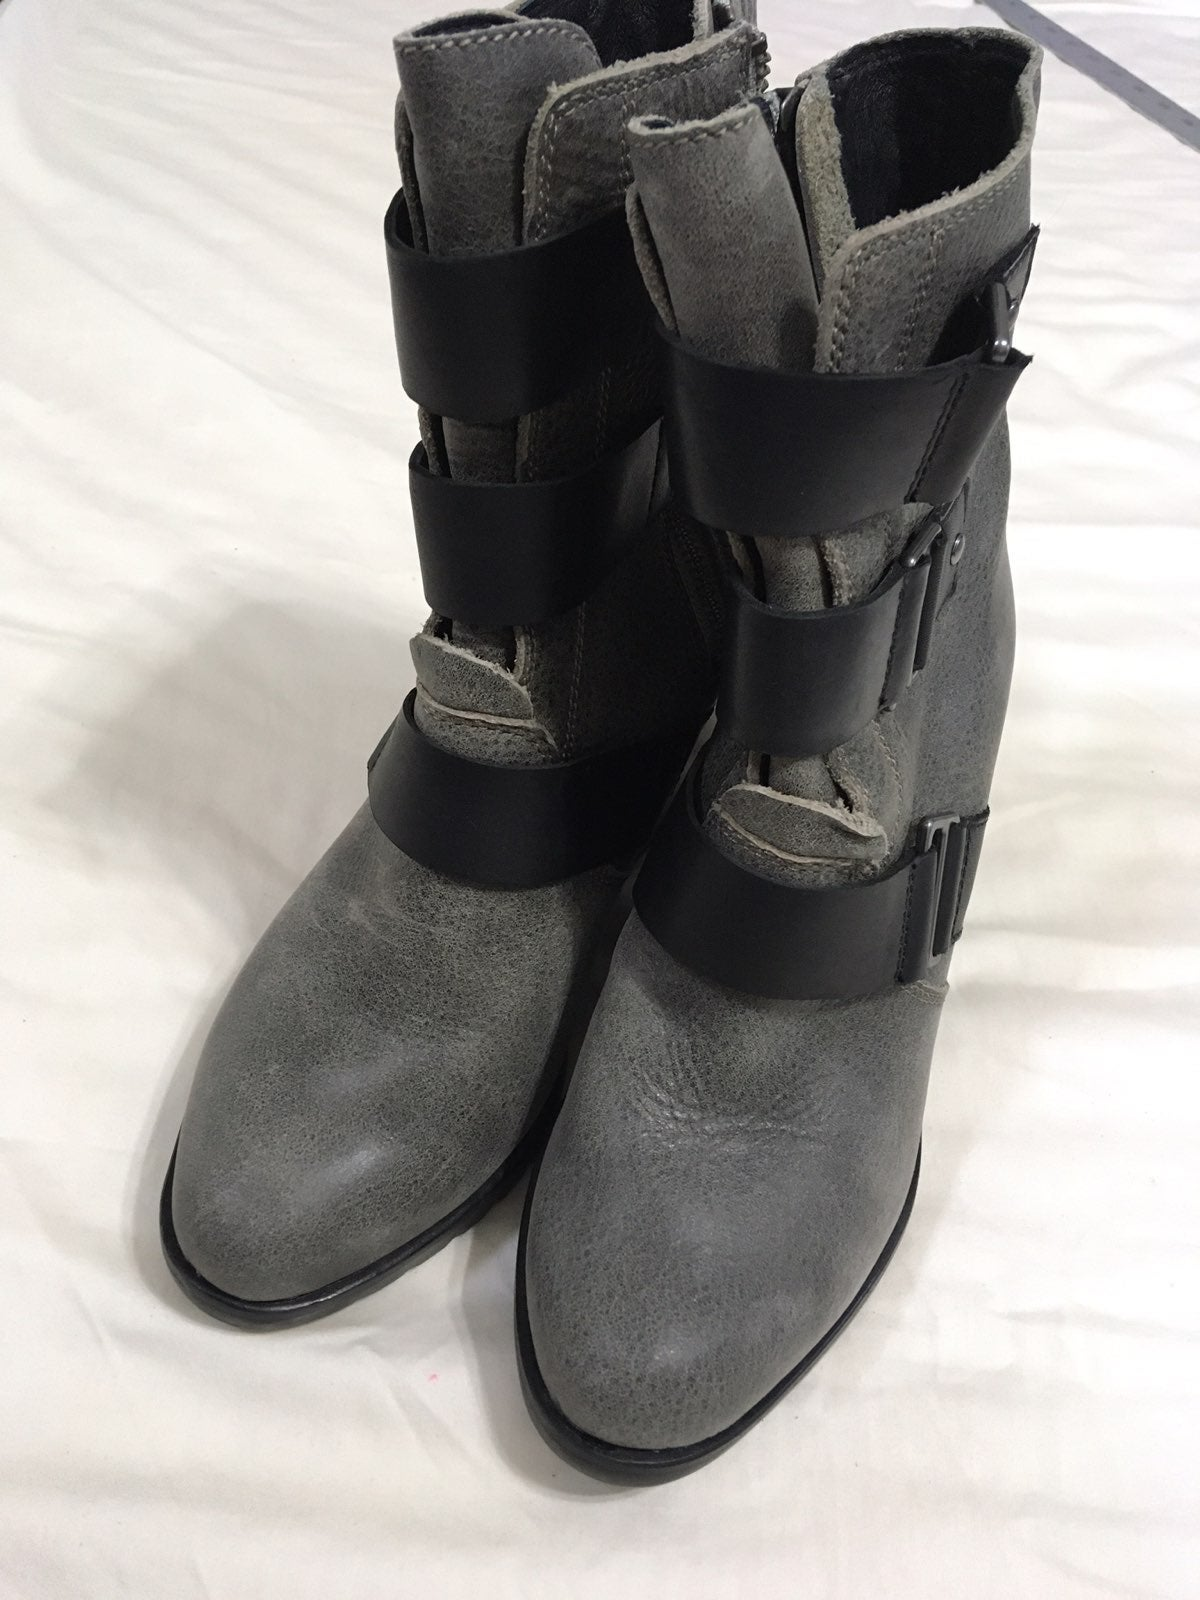 3-Strap Gray Leather Wedge Boots